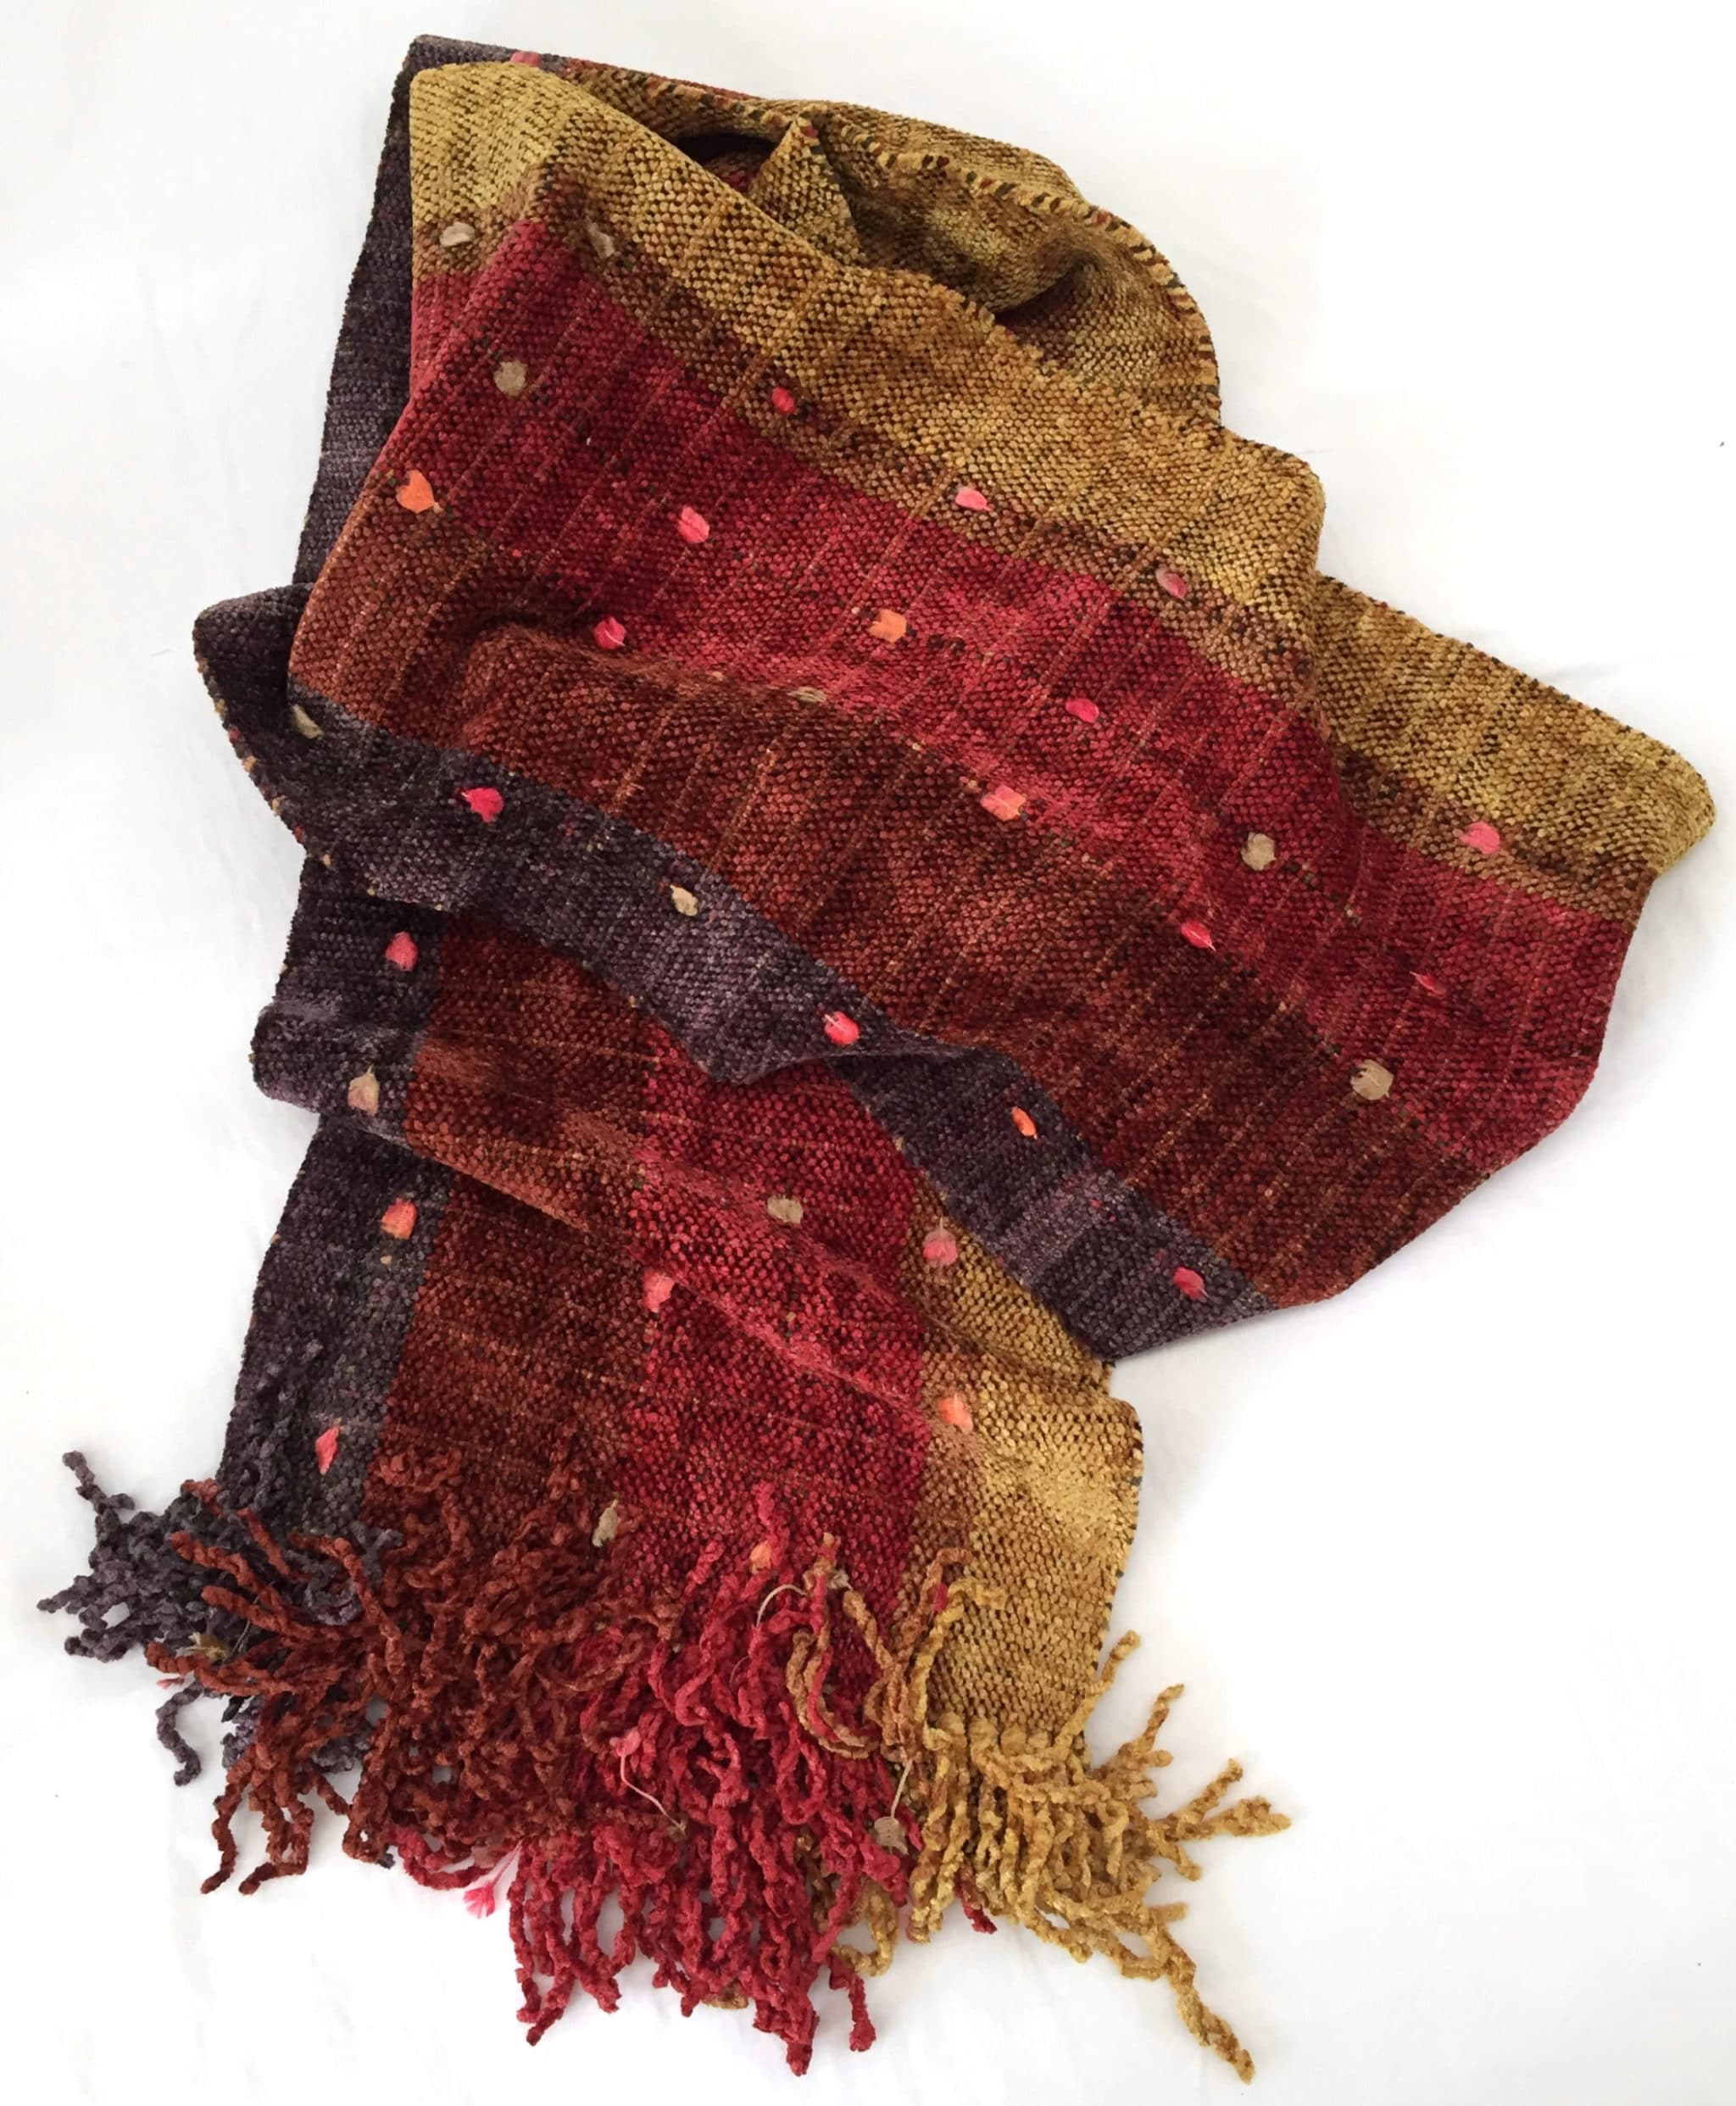 Purple, Cinnamon, Red, Coffee, and Gold Stripes with Ornamental Yarn and Space-Dyed Autumn Warp  - Bamboo Chenille Handwoven Scarf 8 x 68